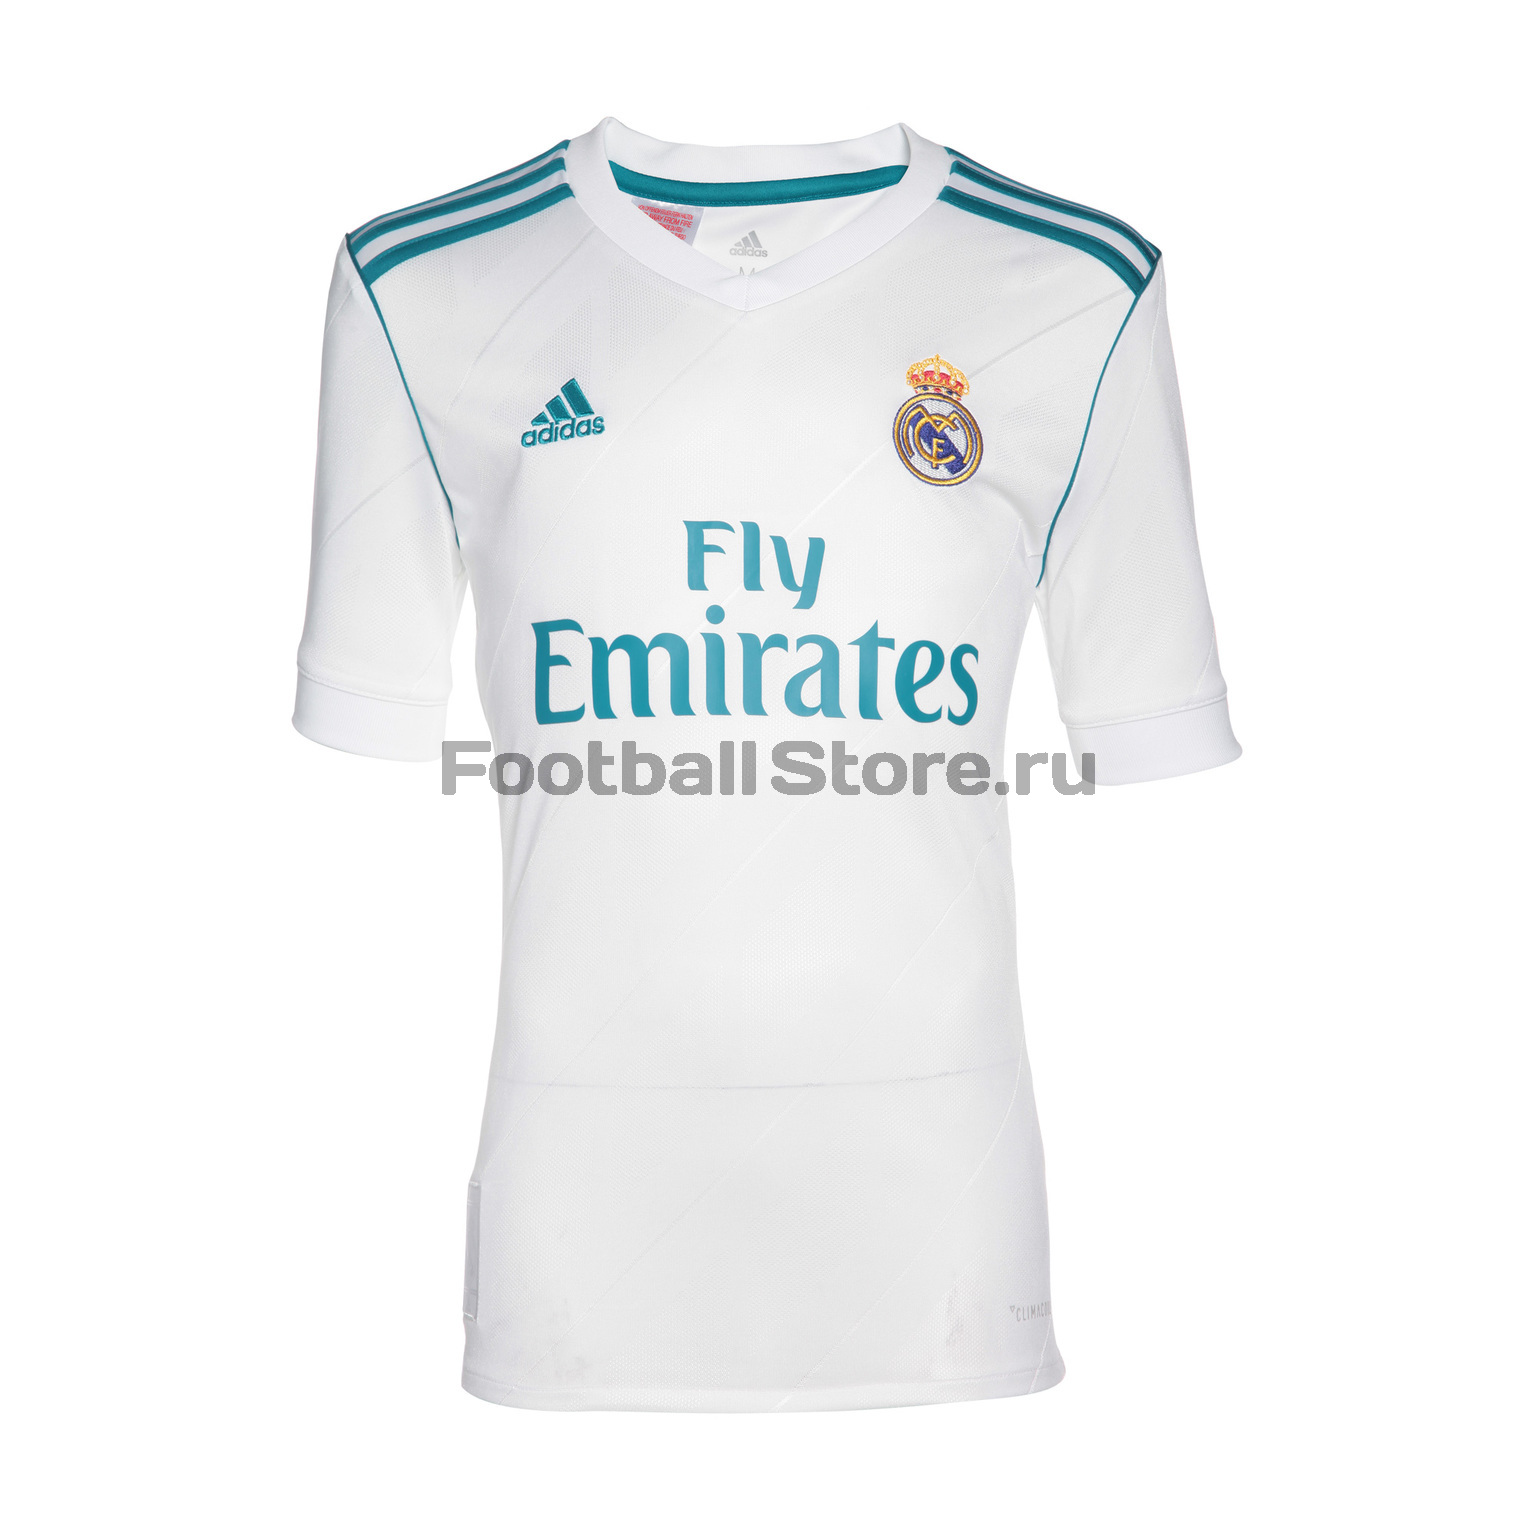 Клубная продукция Adidas Футболка подростковая Adidas Real Madrid Home B31111 real madrid adidas свитер adidas real madrid euhybrid top bq7851